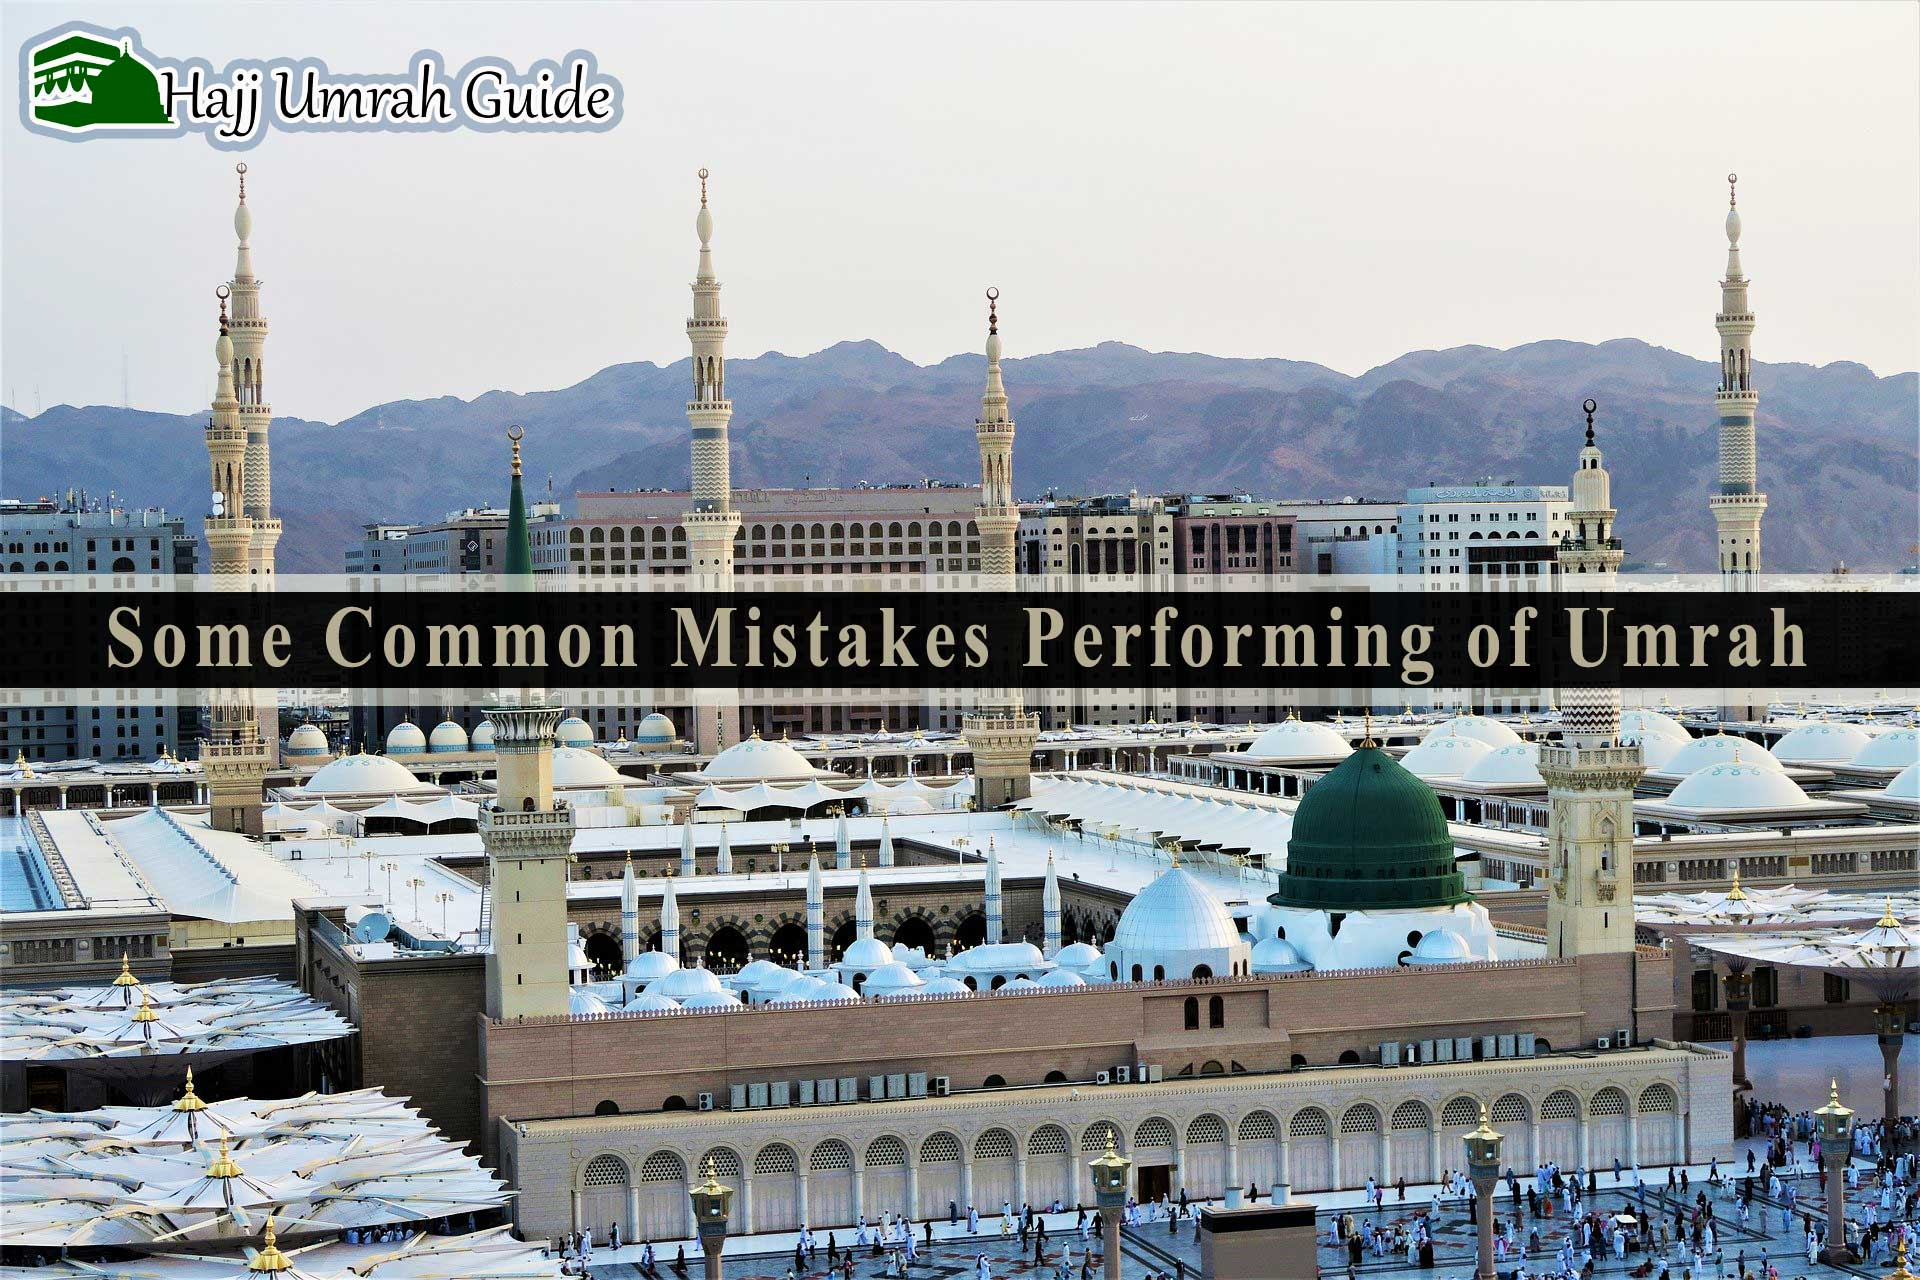 SOME COMMON MISTAKES PERFORMING OF UMRAH